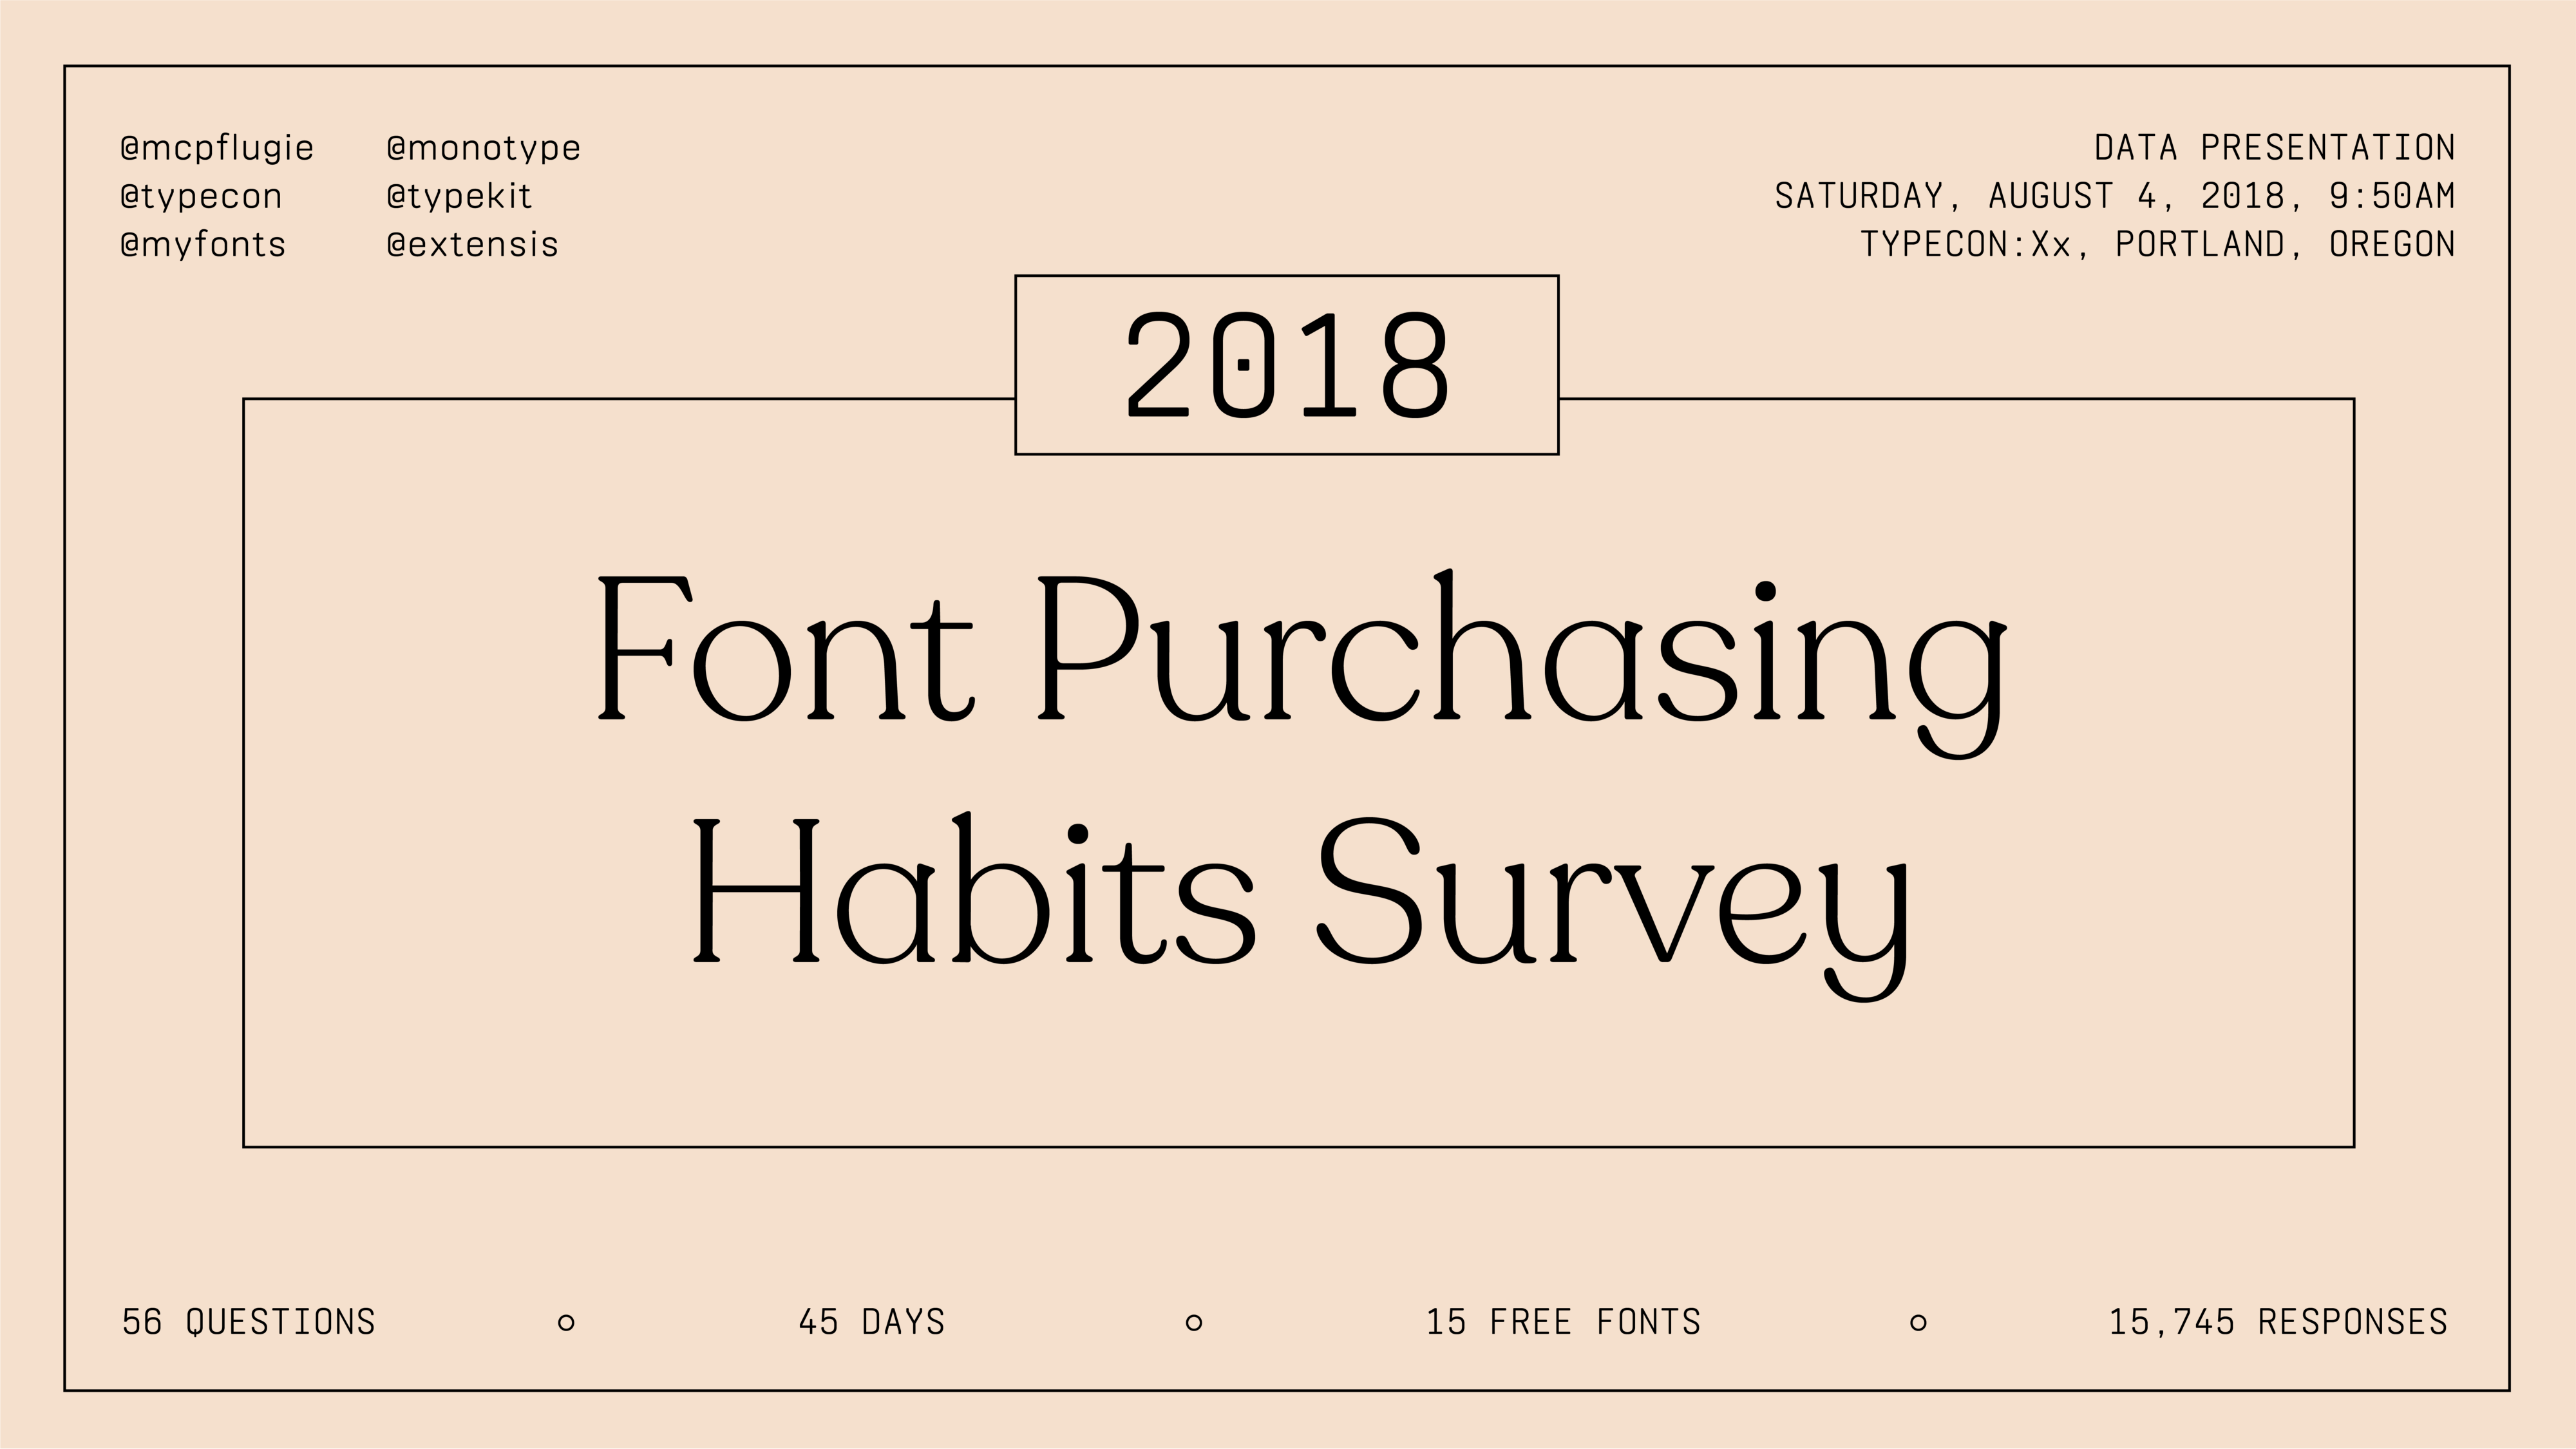 The 2018 Font Purchasing Habits Survey Results (Complete